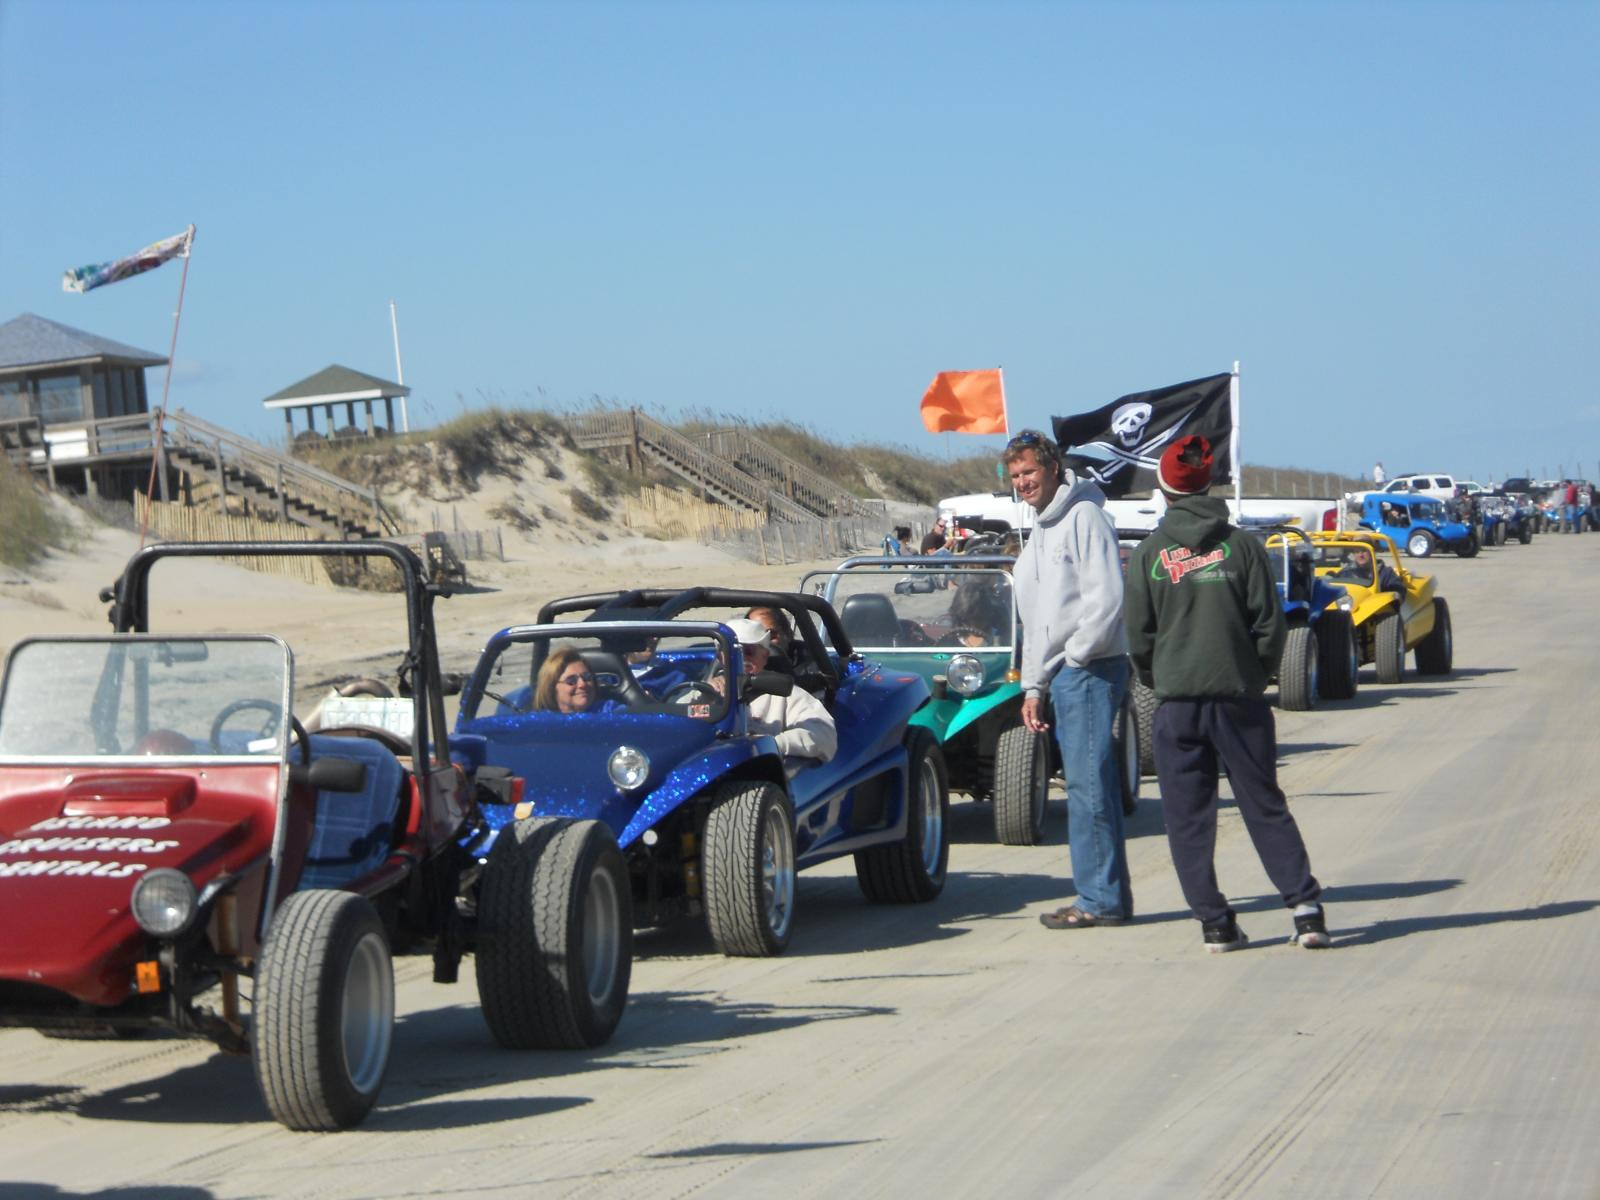 Manx on the Banx 2012